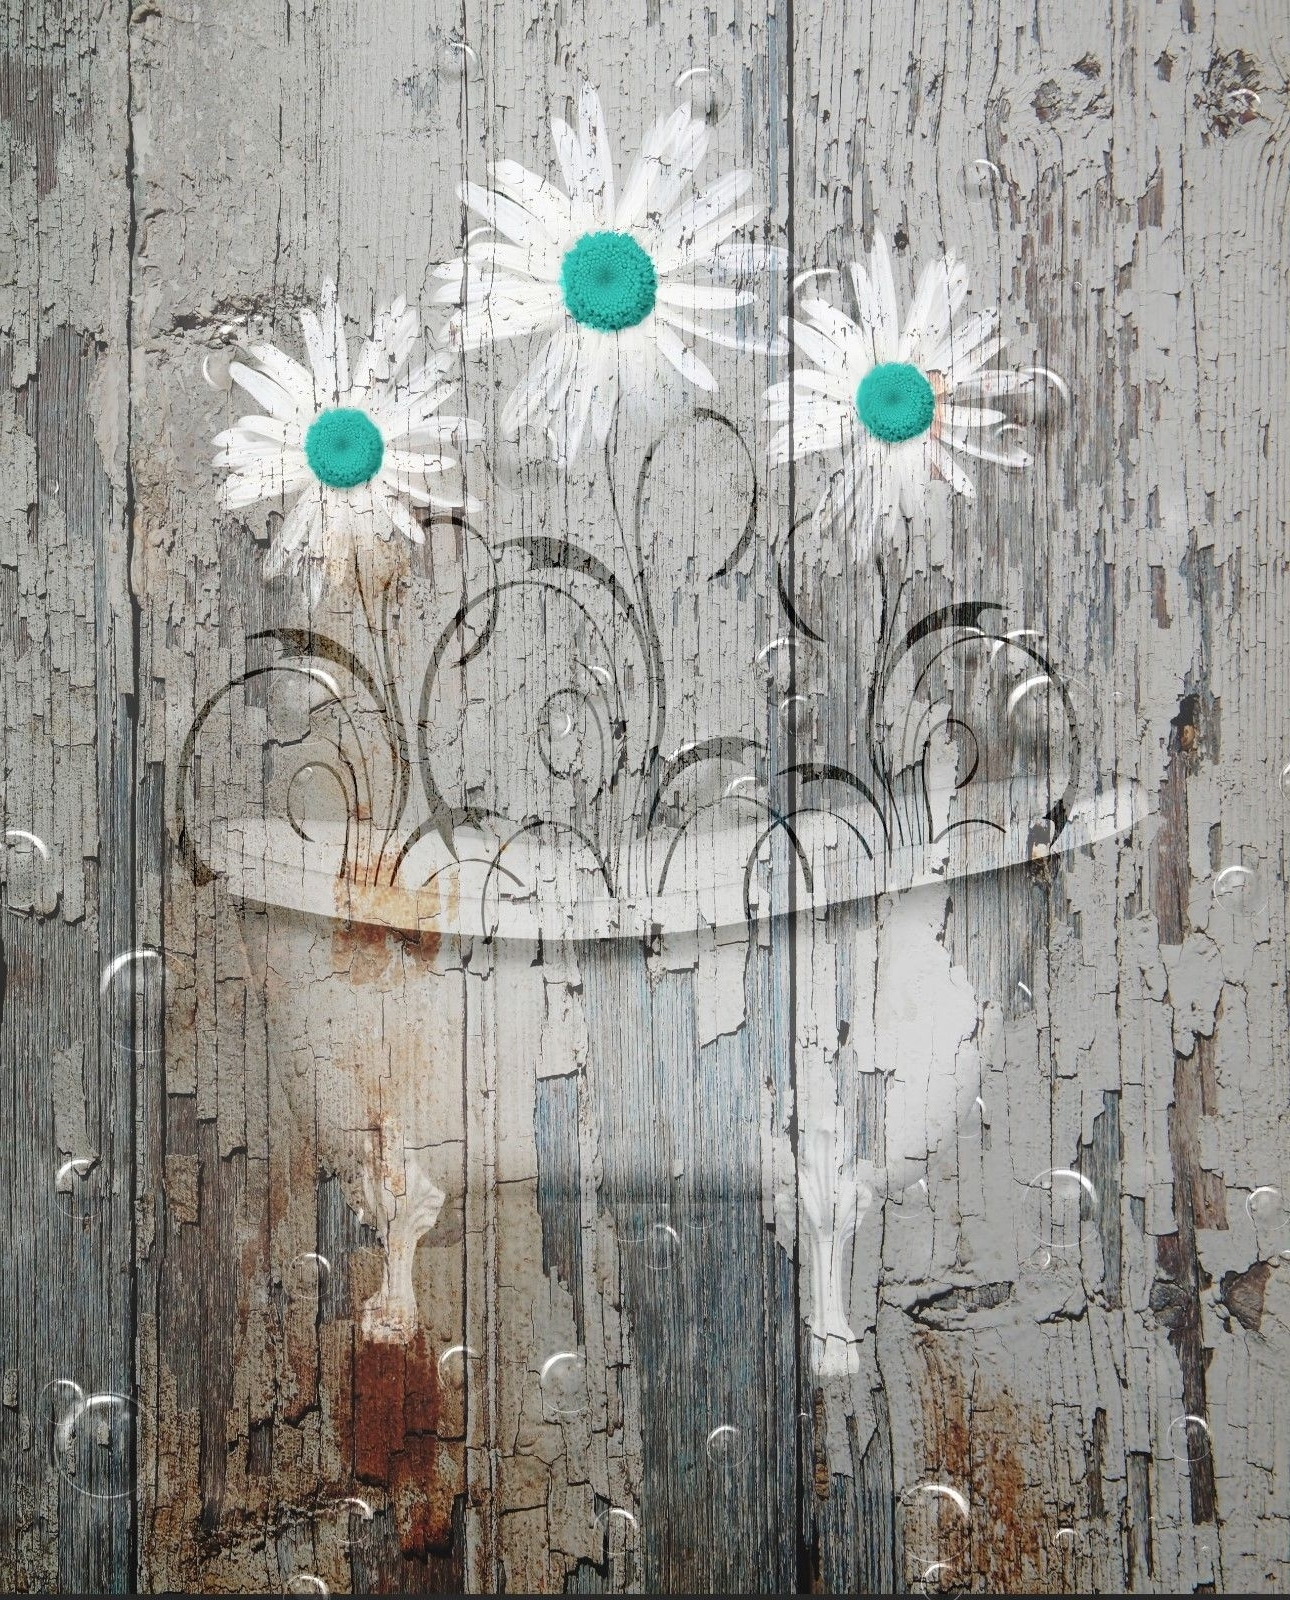 Rustic Distressed Daisy Flowers In Bathtub, Farmhouse Country Wall Intended For Most Recently Released Country Wall Art (View 15 of 20)